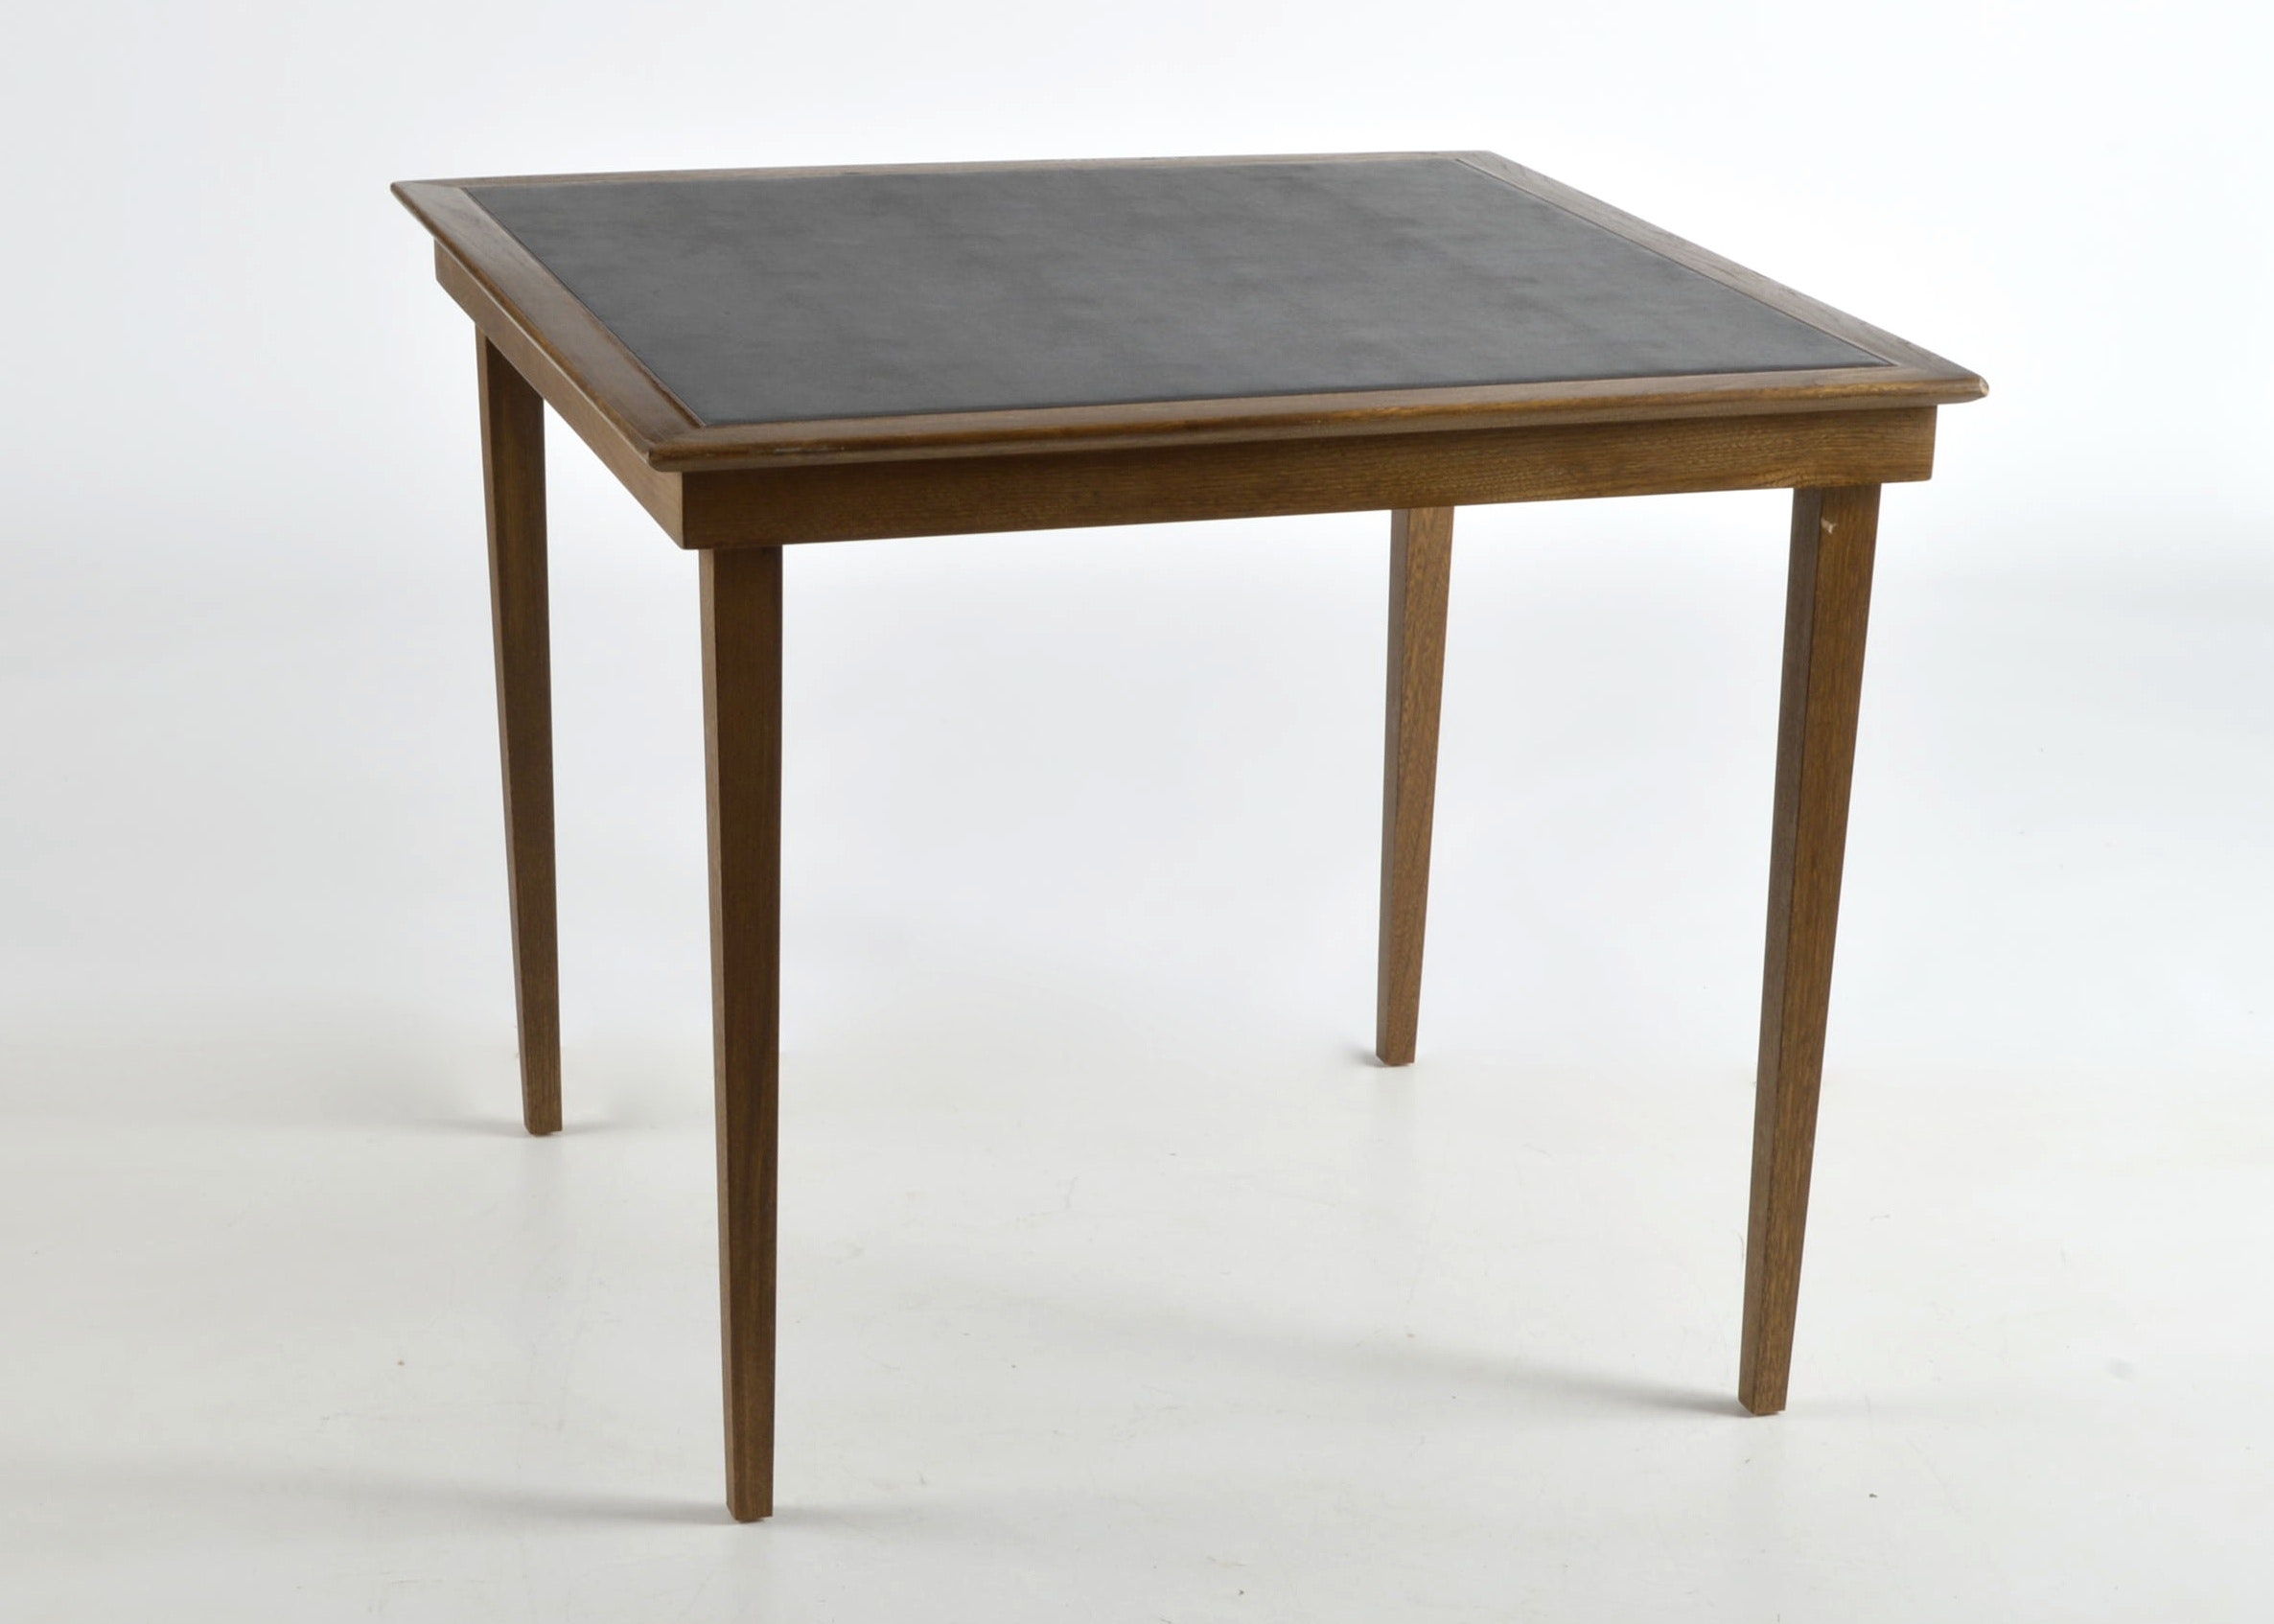 Genial Leather Top Wooden Folding Card Table ...